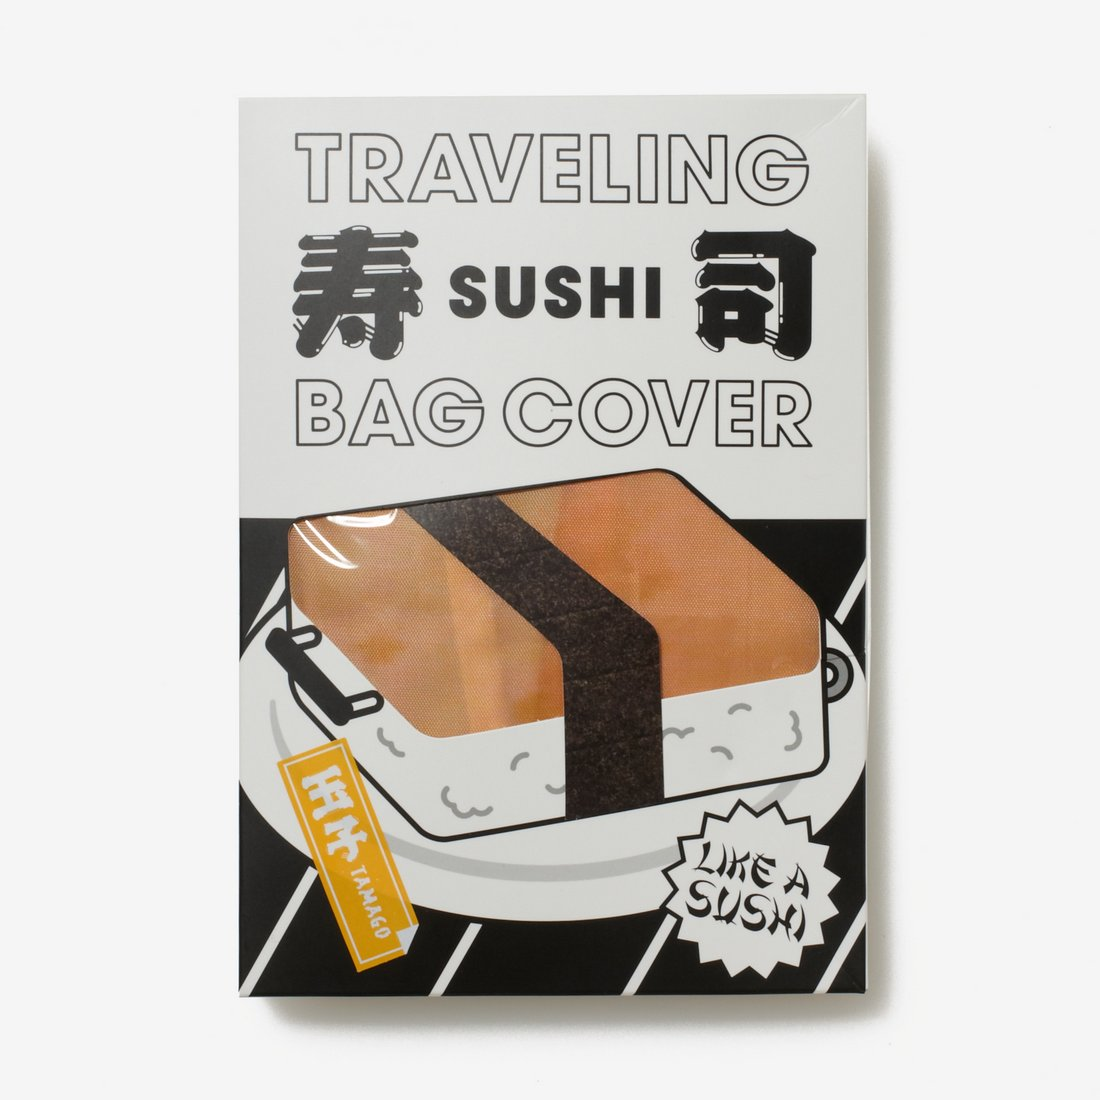 sushi-suitcase-cover-1 (3)